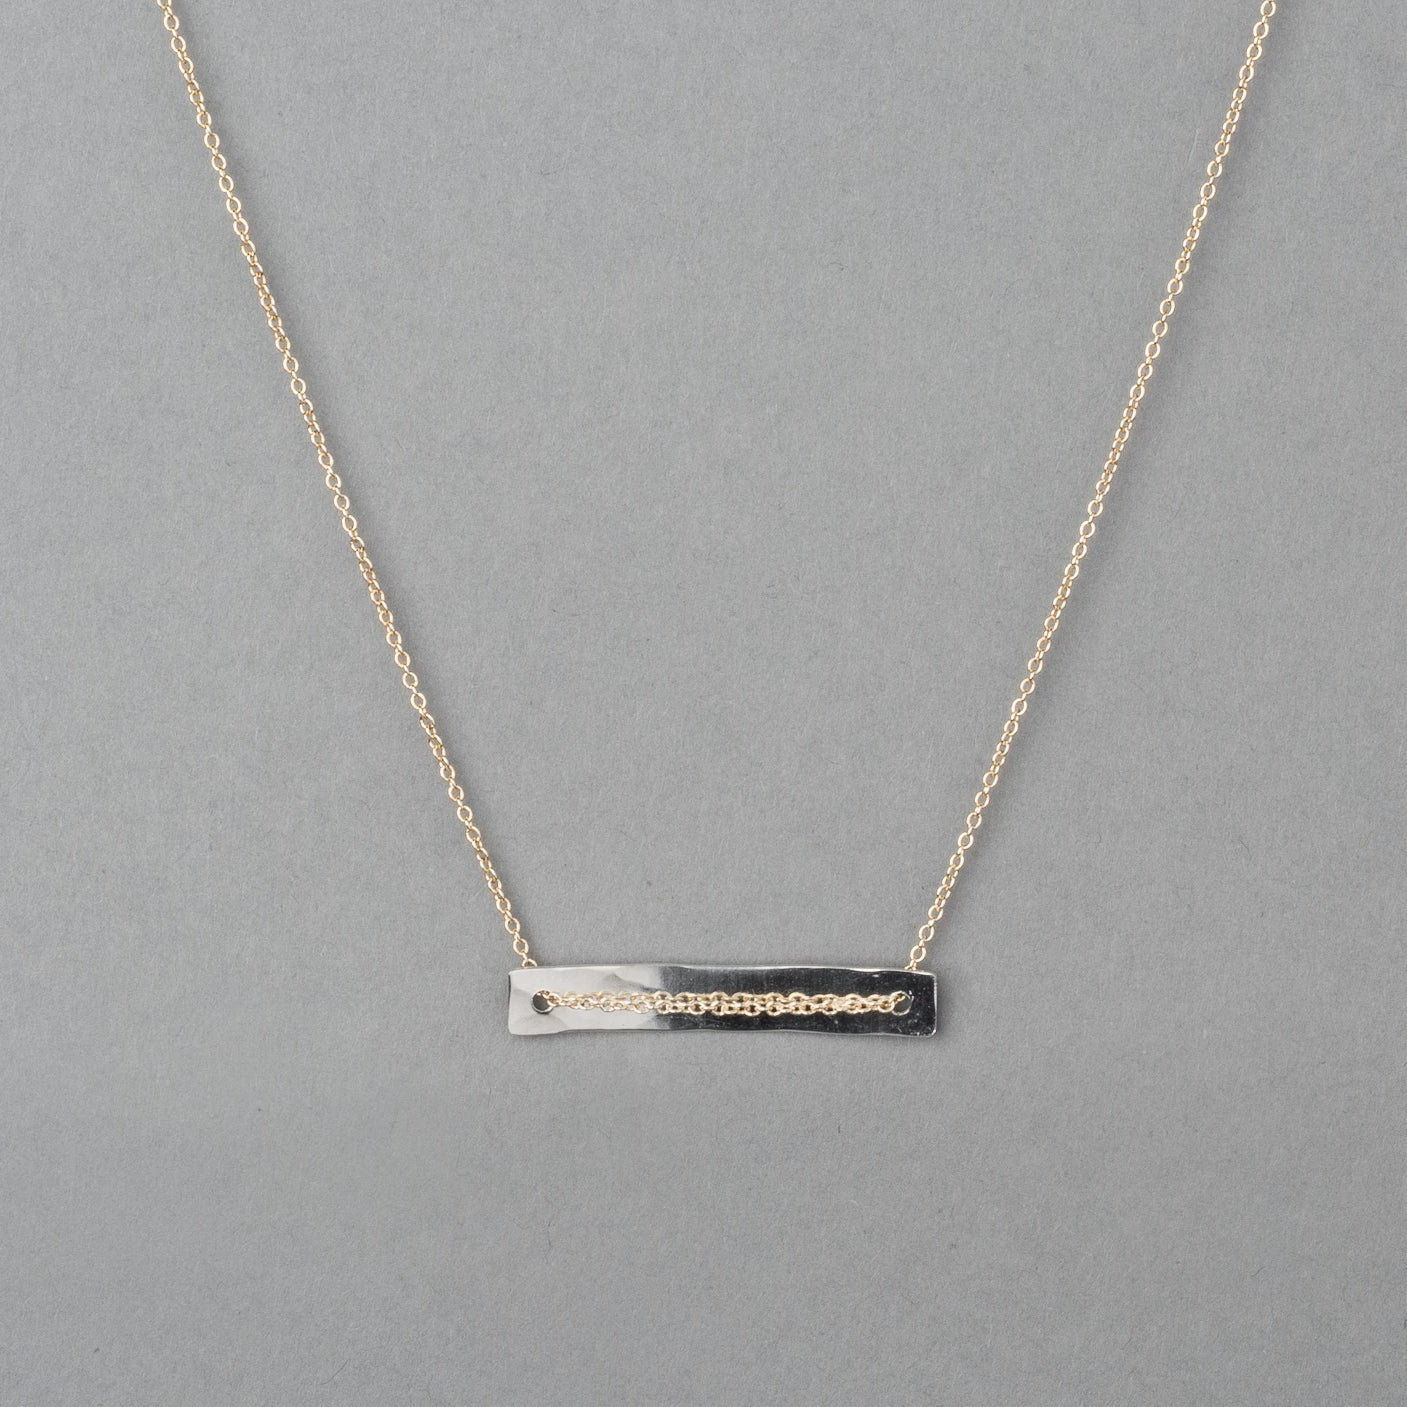 GREENBELT TWO-TONE NECKLACE